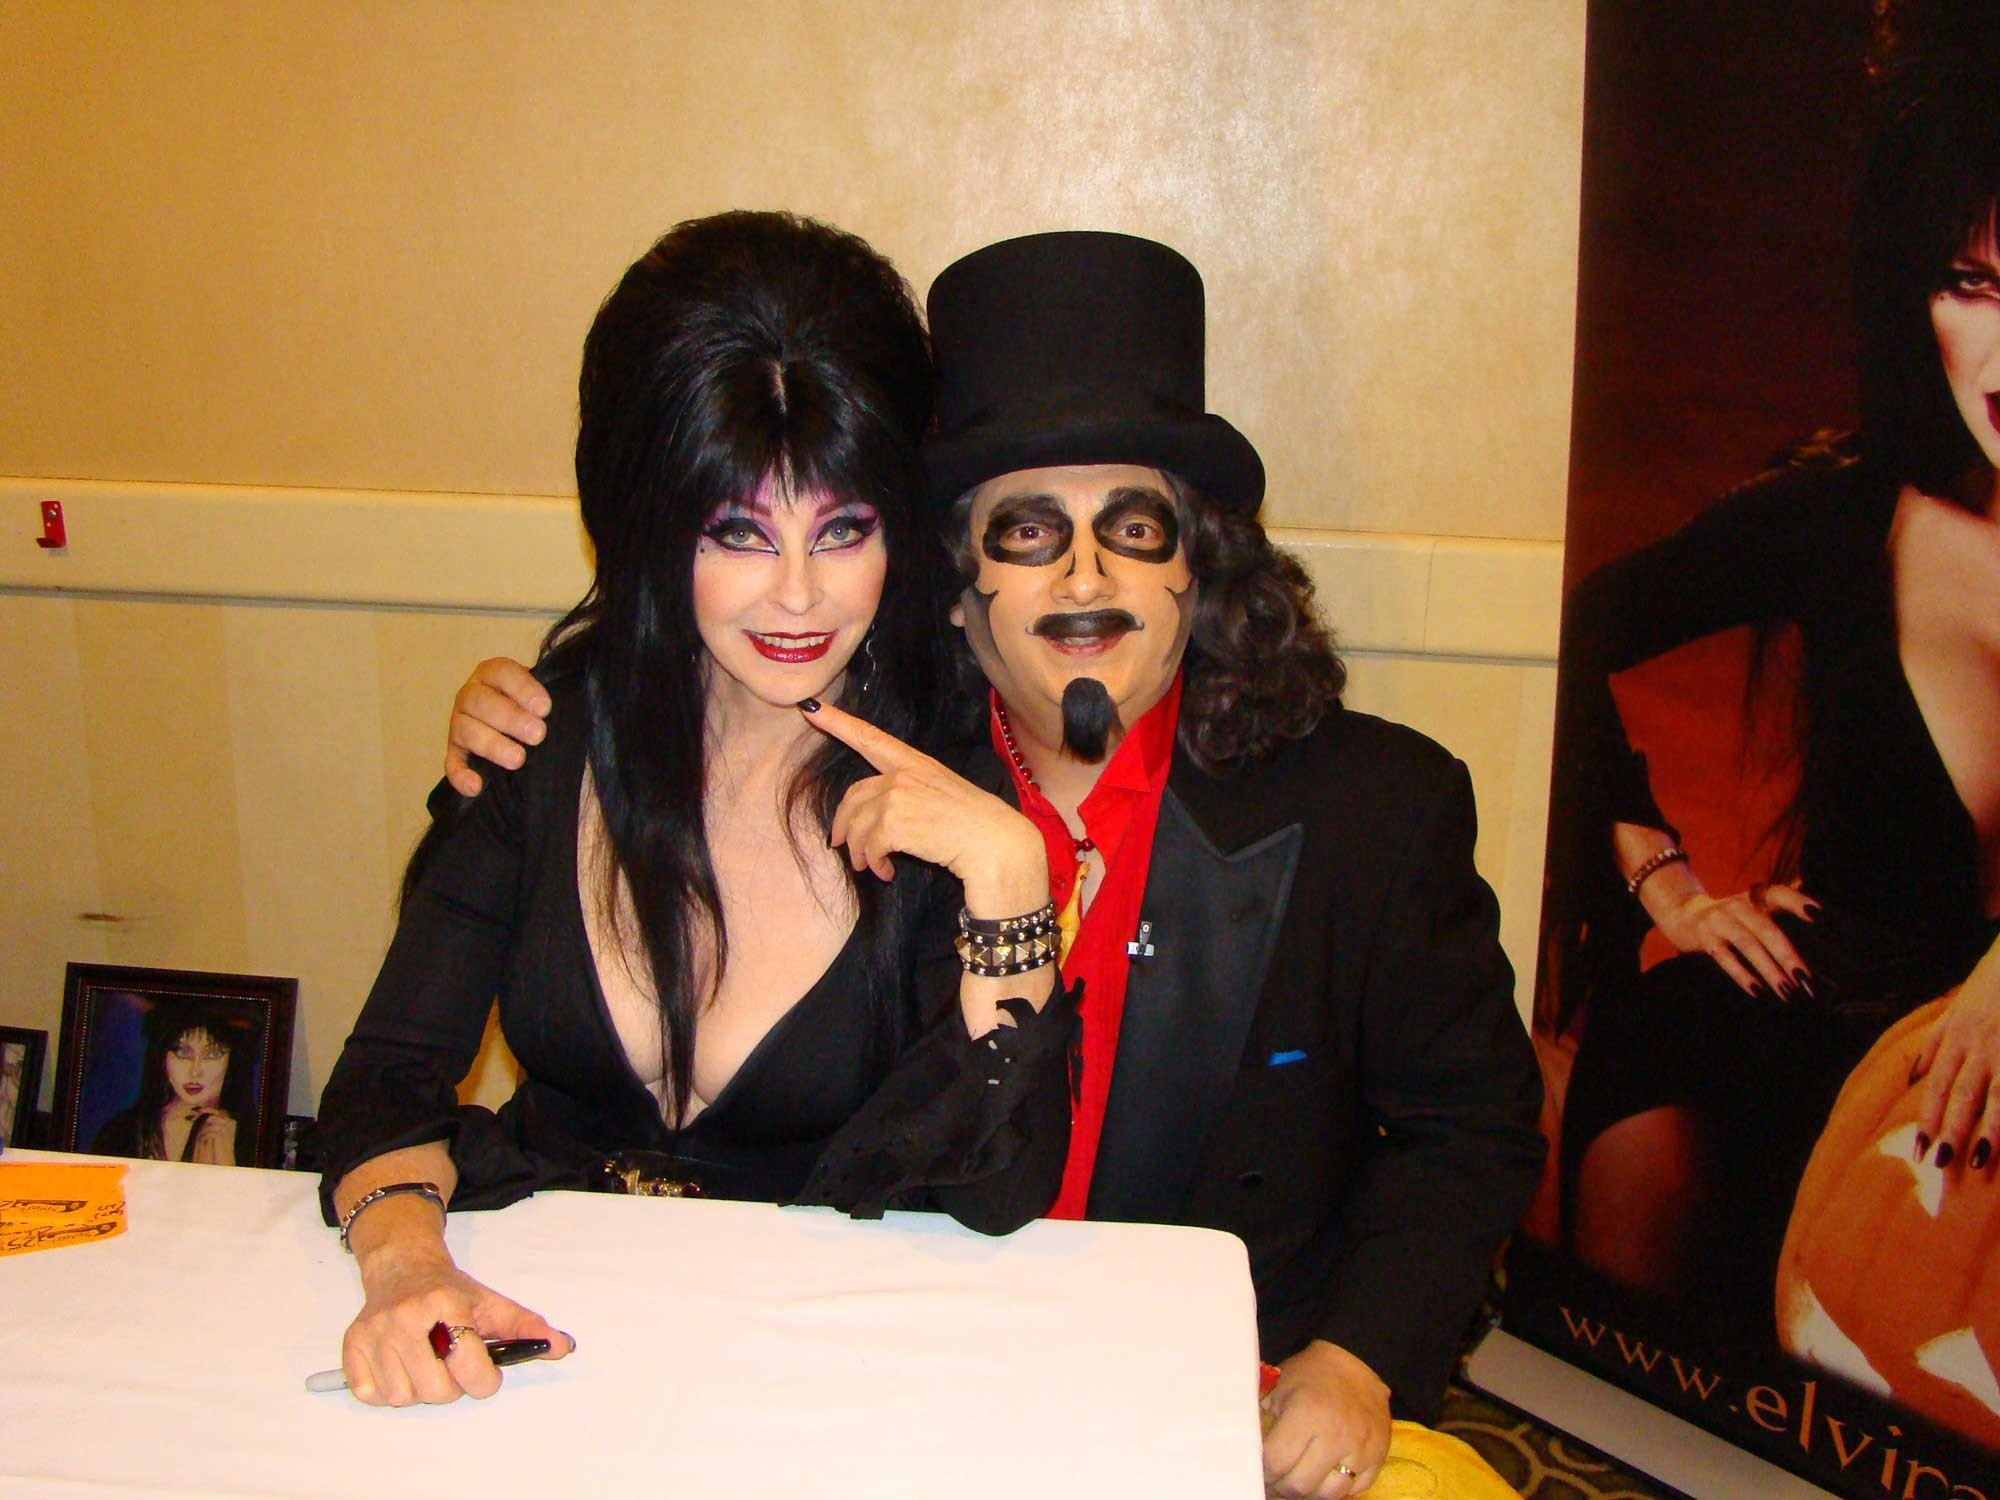 2000x1500 Television Horror Host Icons: Elvira, Mistress of the Dark and Svengoolie